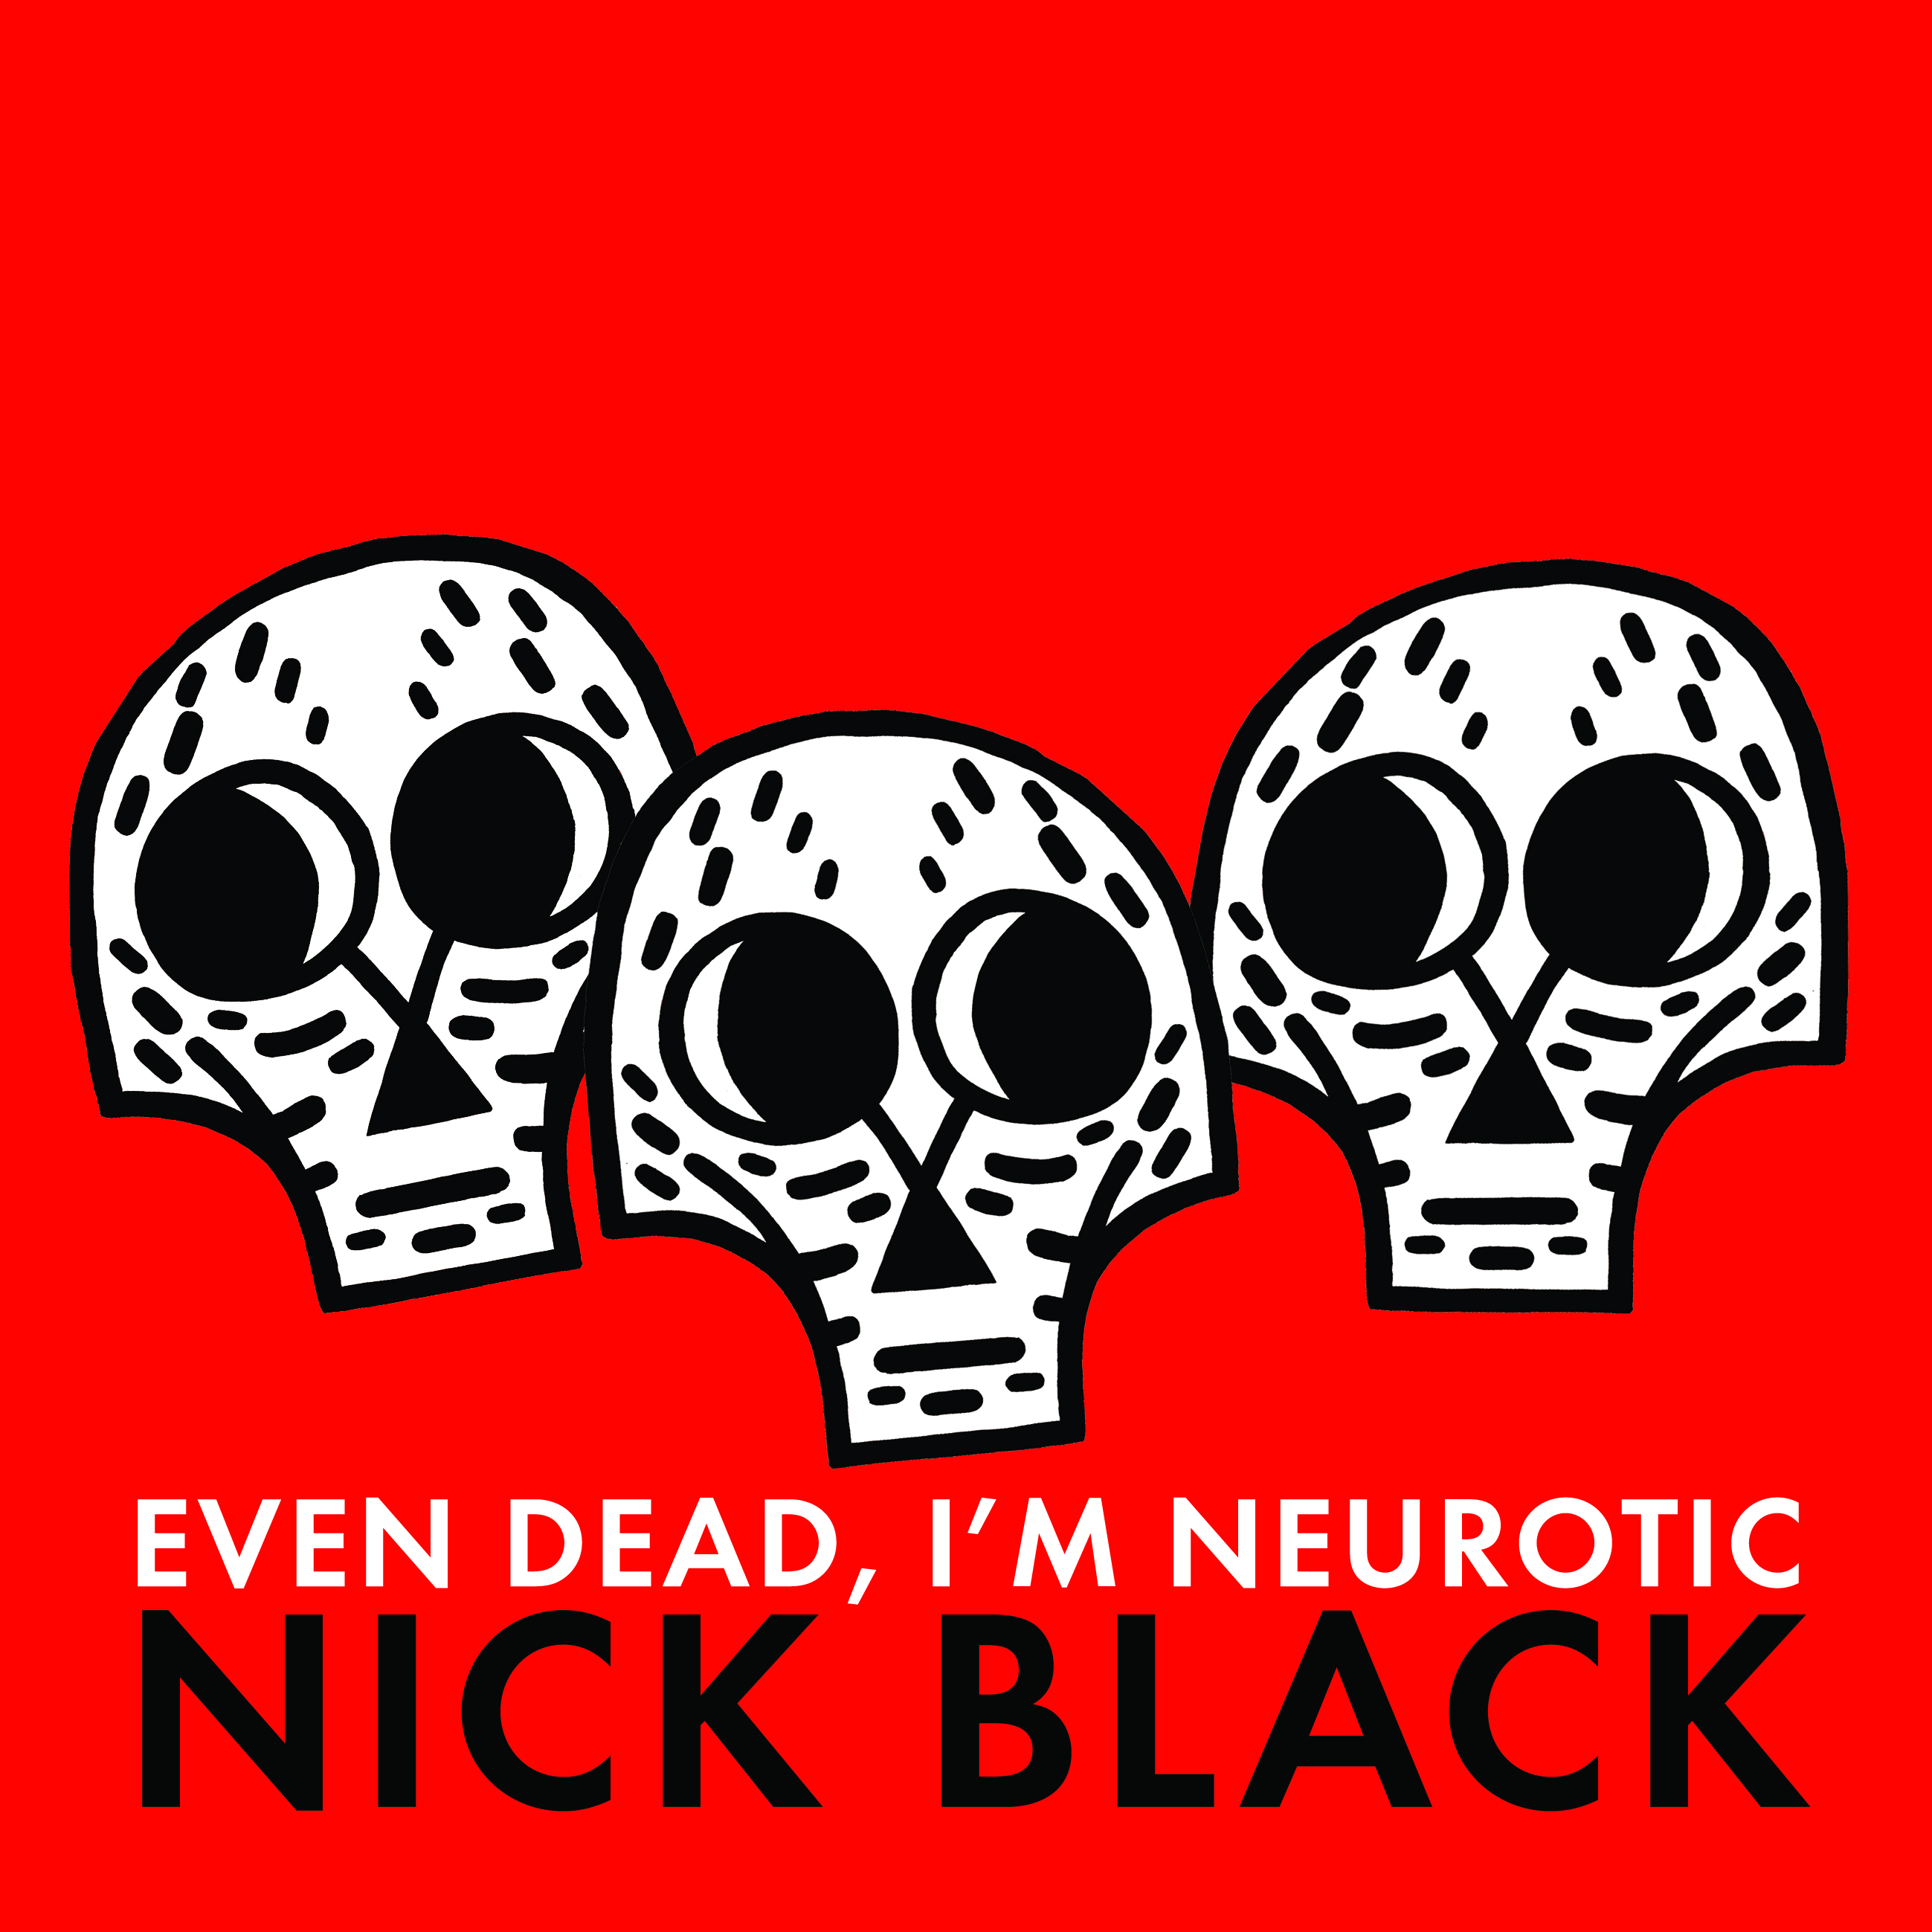 EVEN DEAD, I'M NEUROTIC